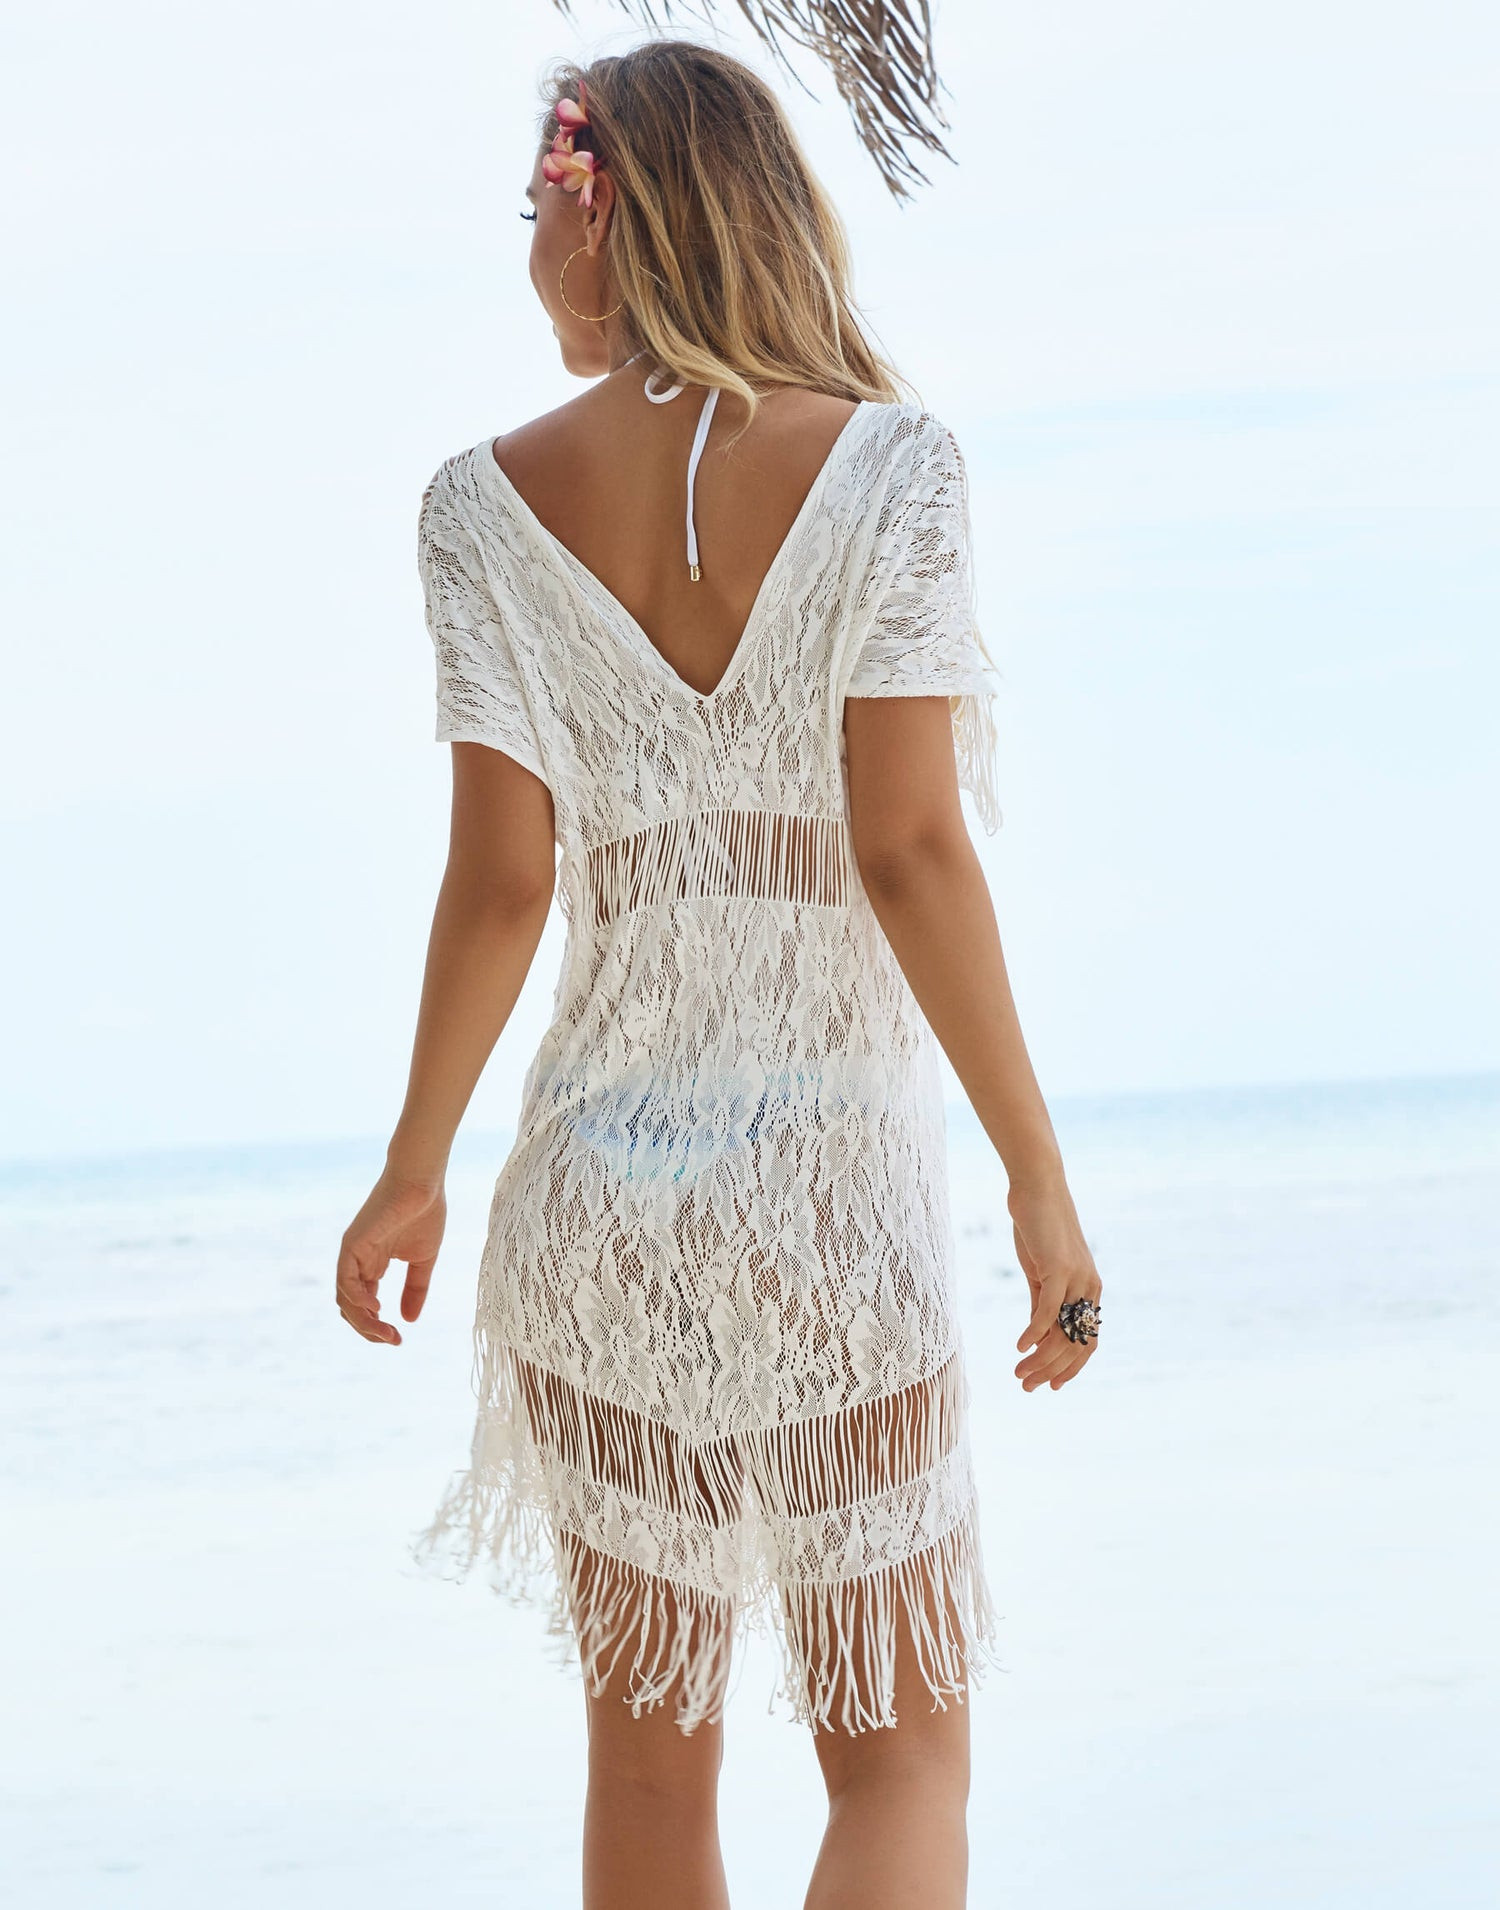 Indian Summer Lace Dress Back View at the Beach